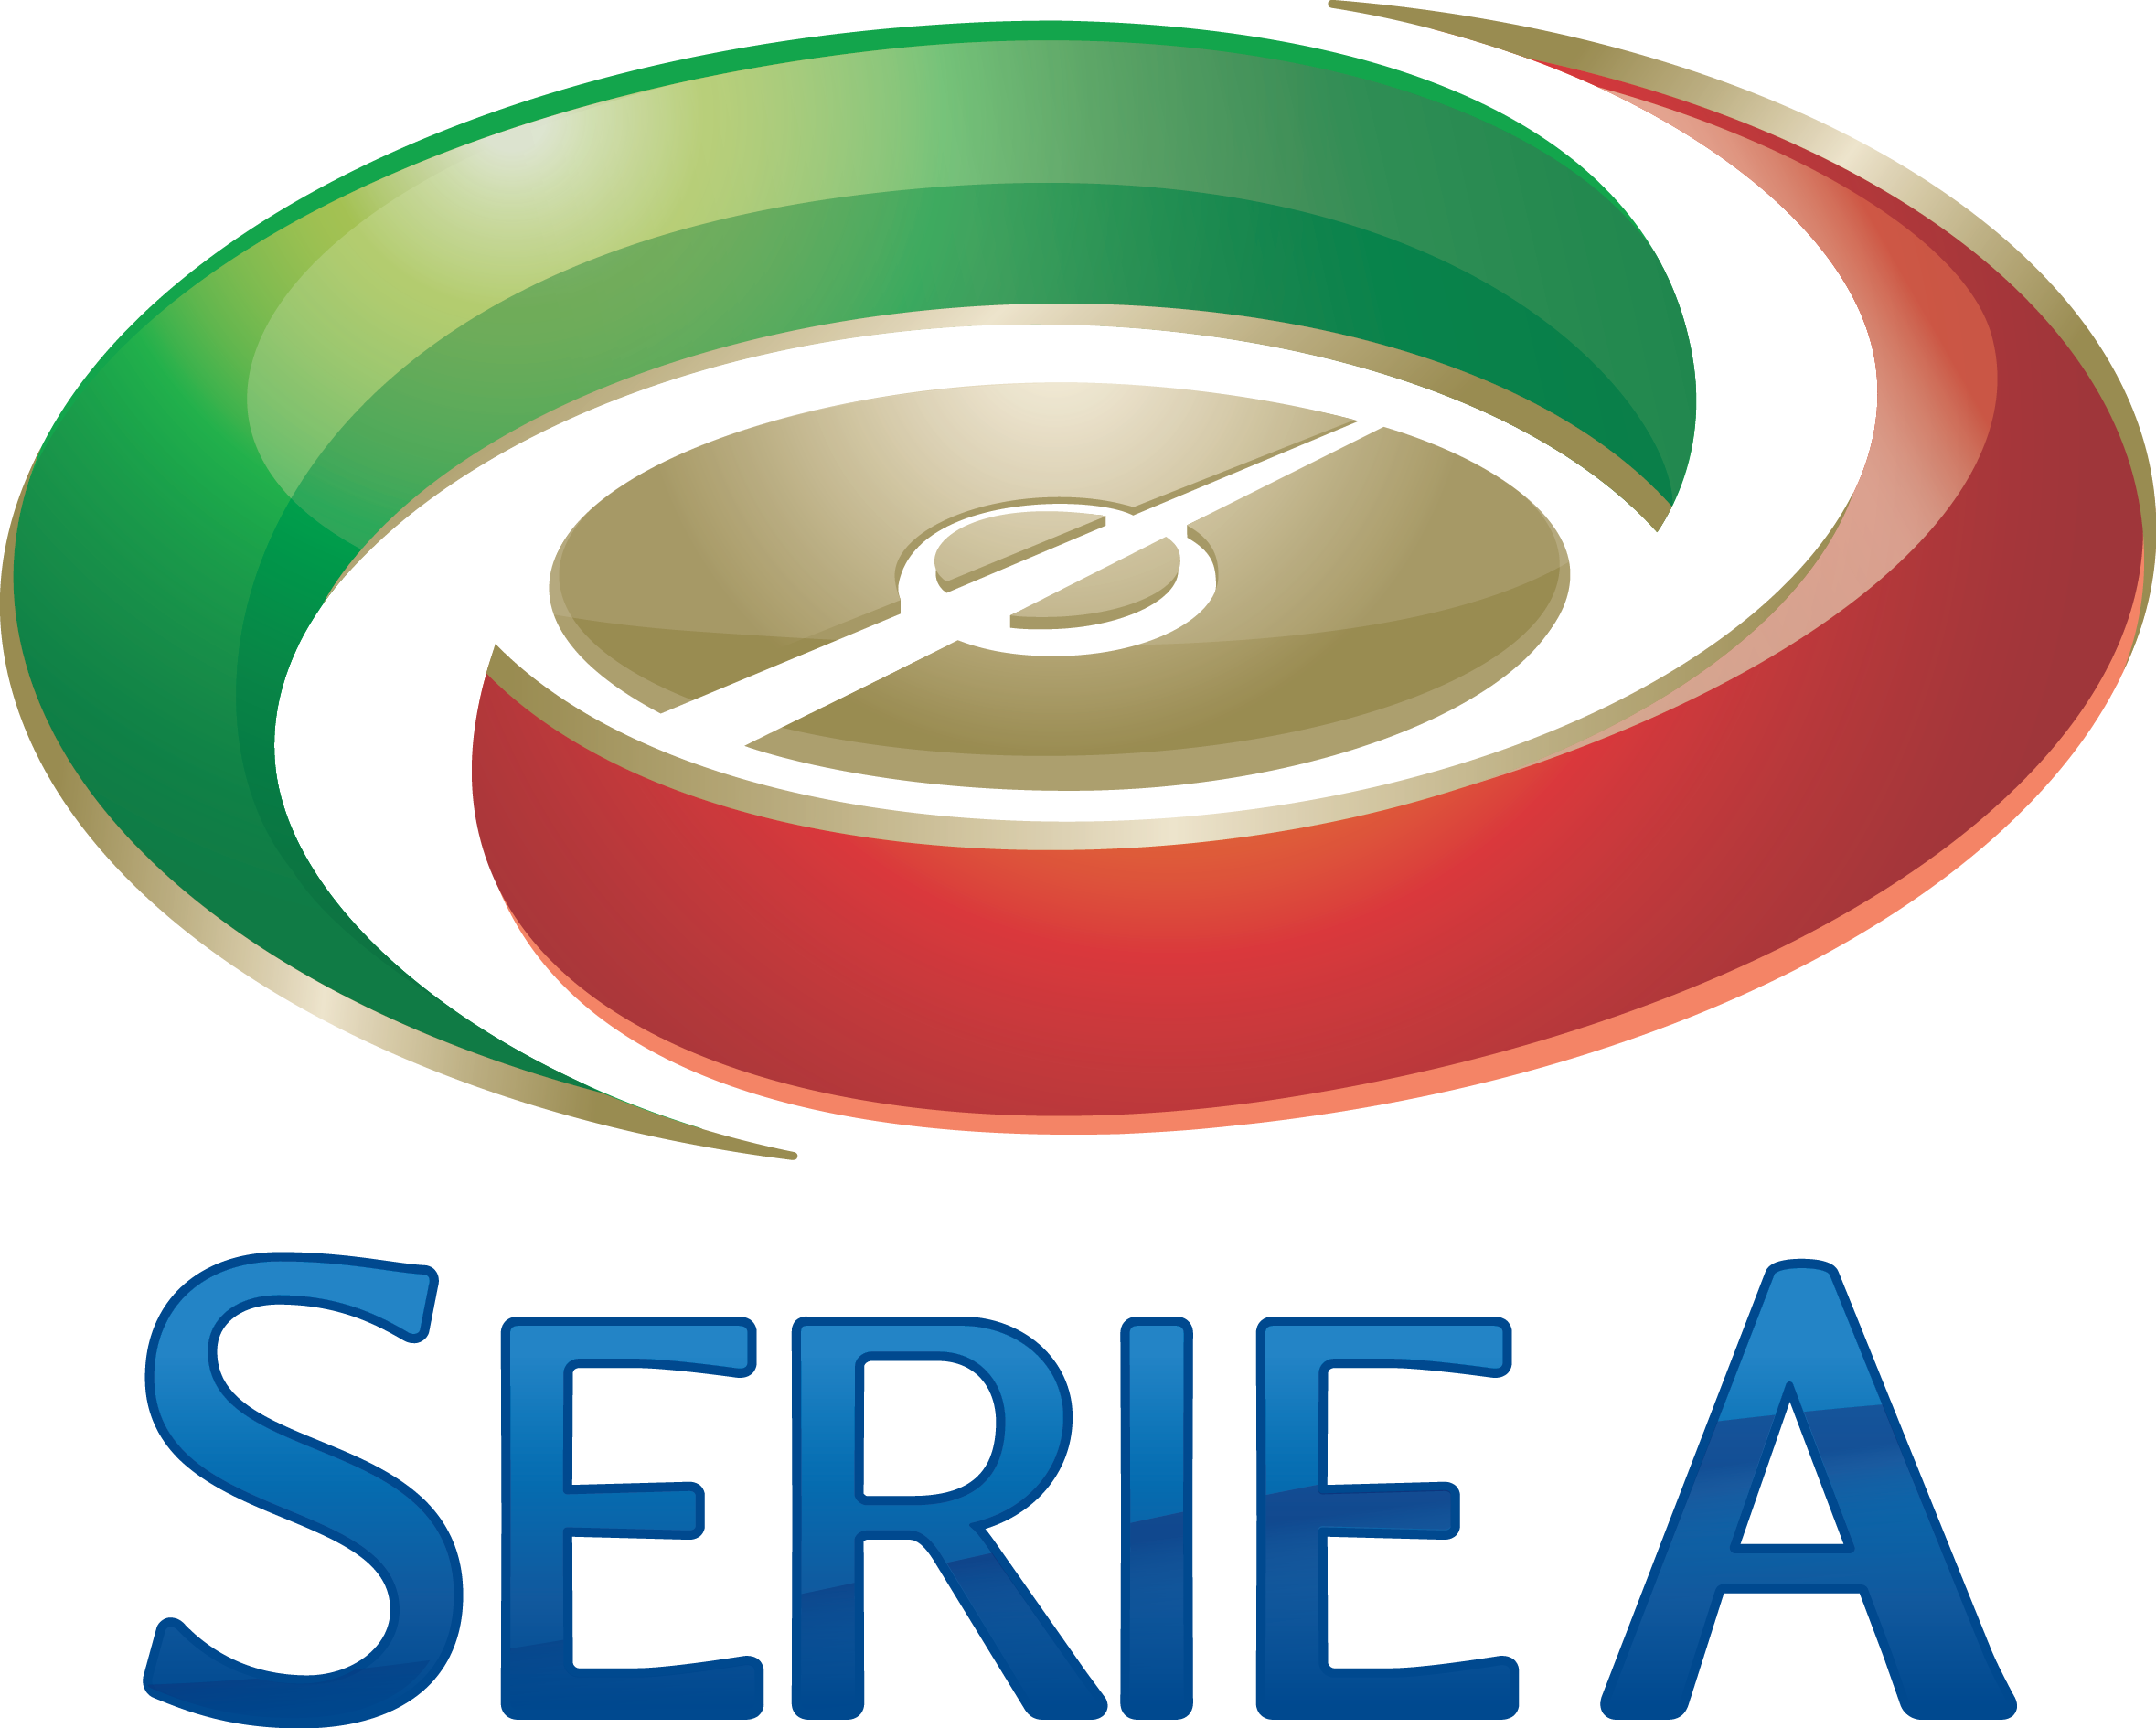 Genoa vs AC Milan 1-0 All goals and highlights 27/09/2015